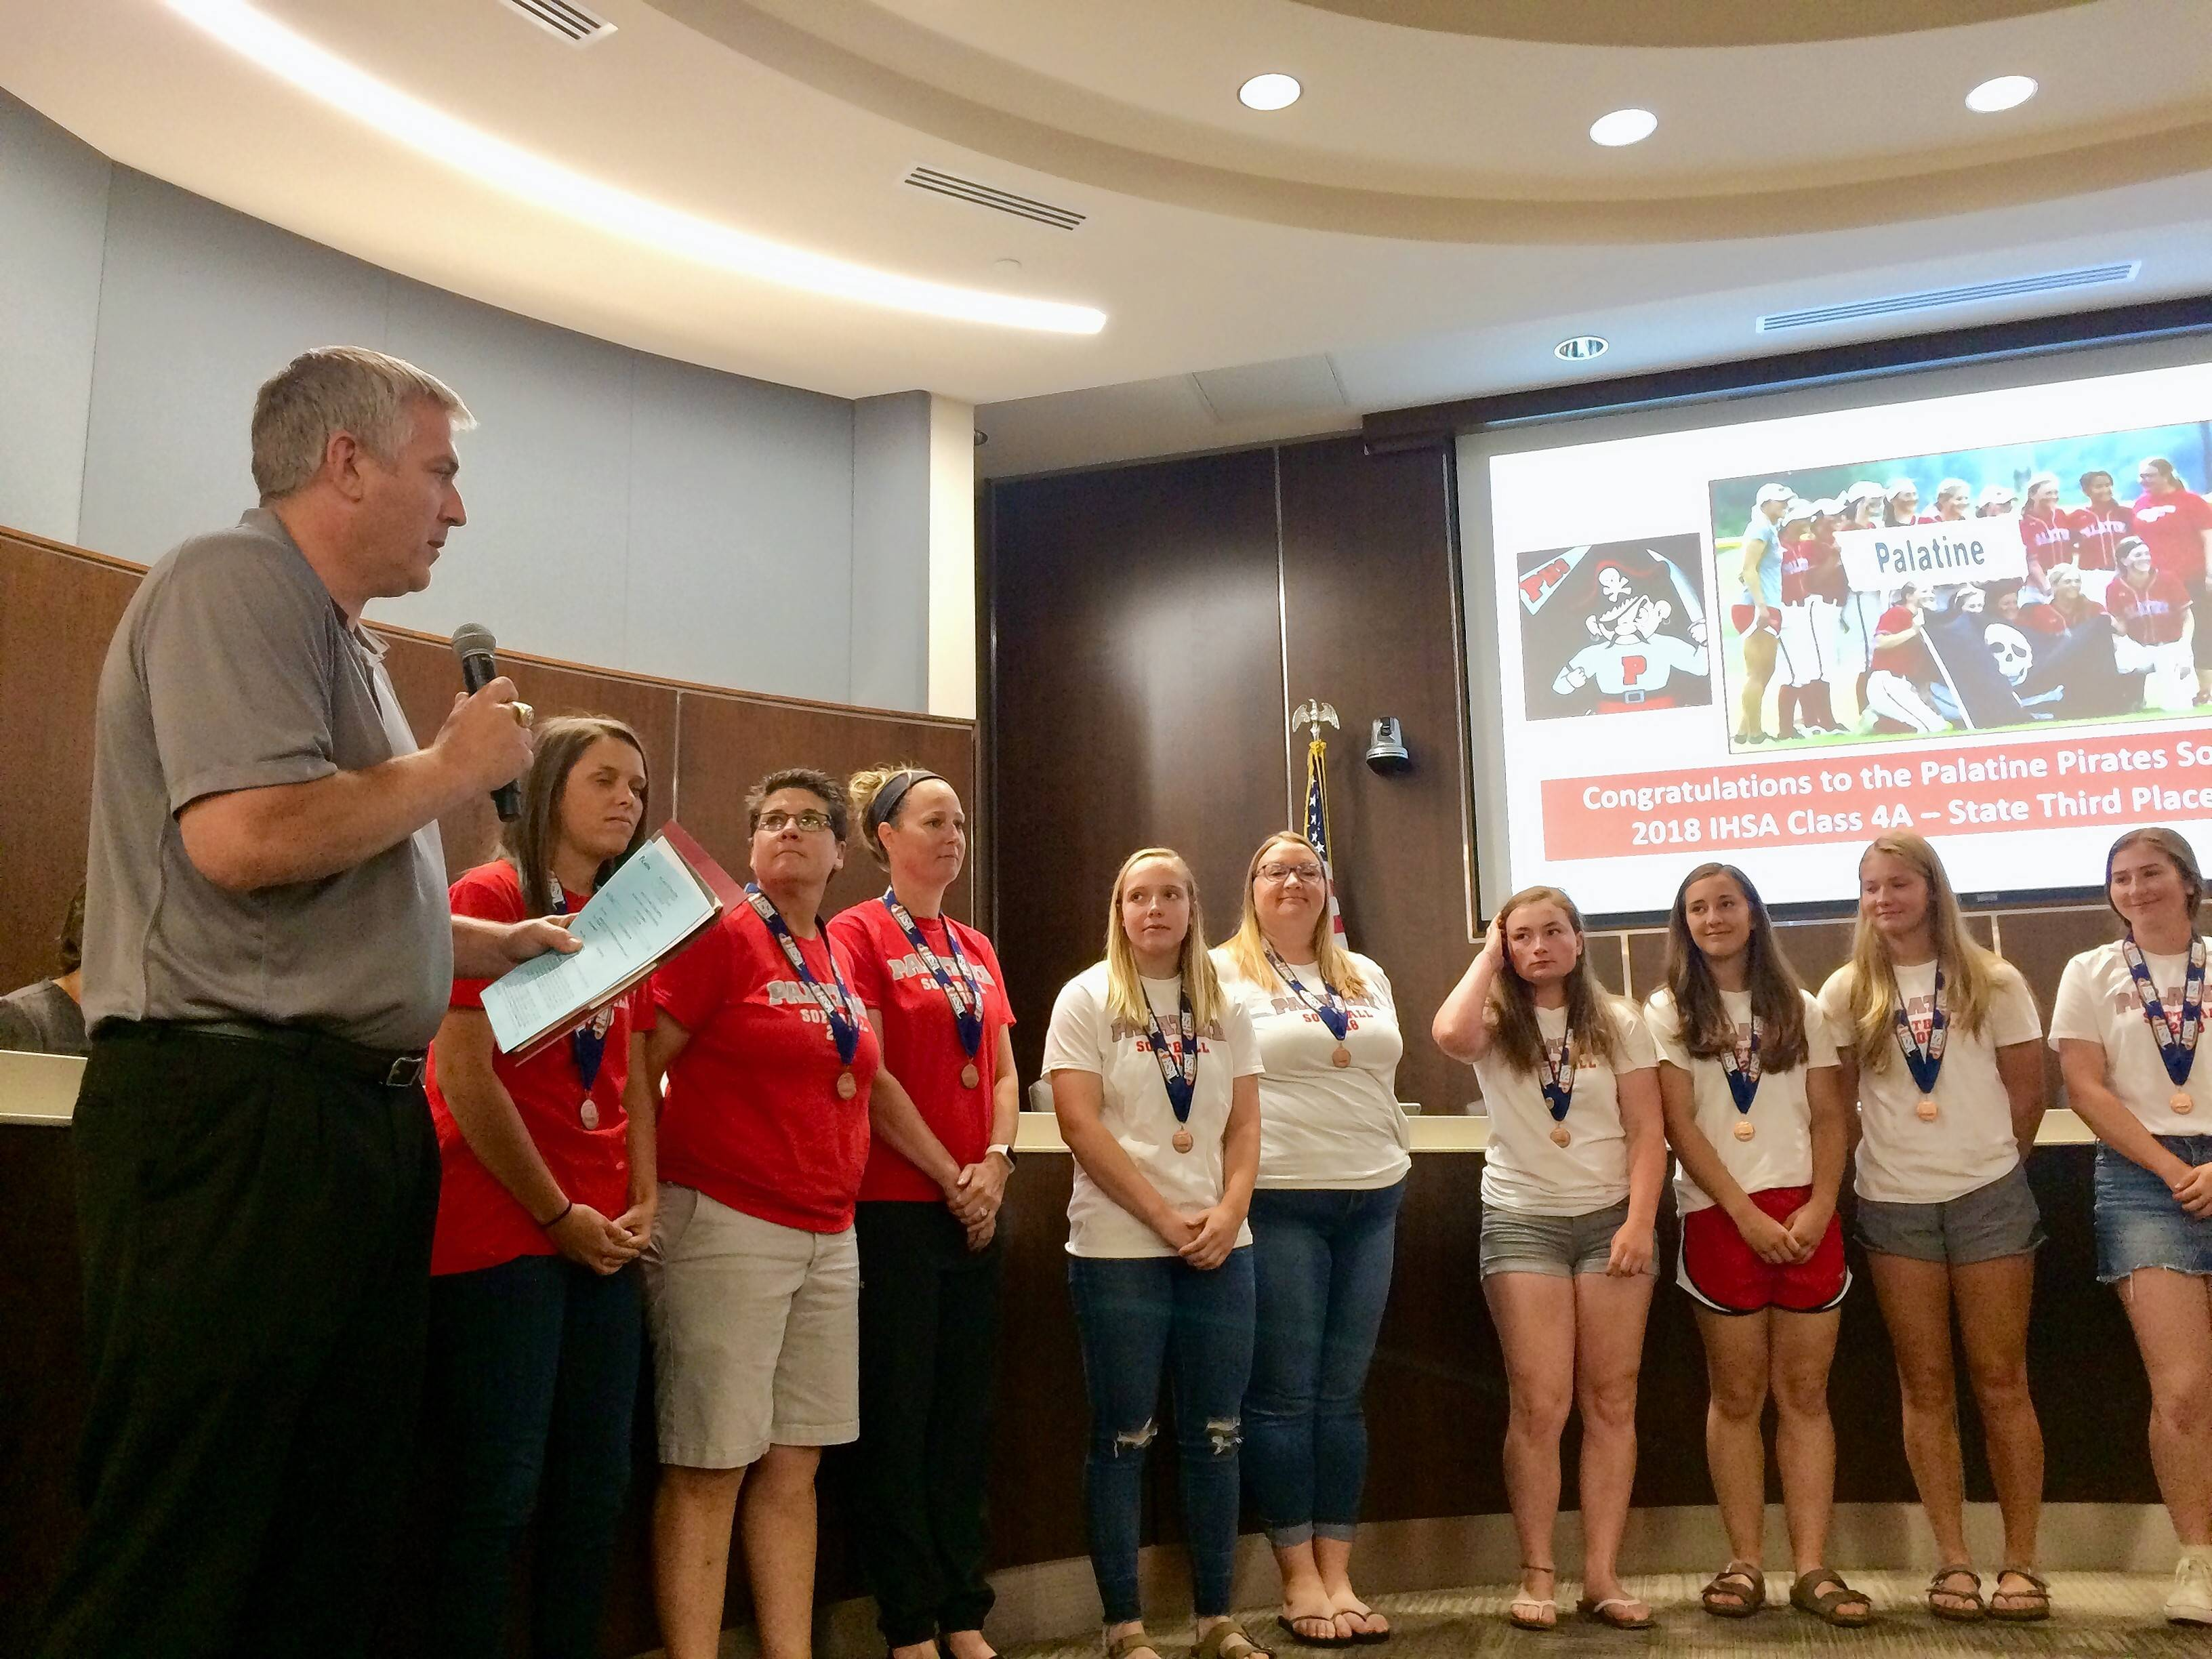 Palatine High School's girls softball team was honored at this week's village council meeting for placing third in the Class 4A state tournament. Palatine Mayor Jim Schwantz, far left, addressed the team about its achievement.